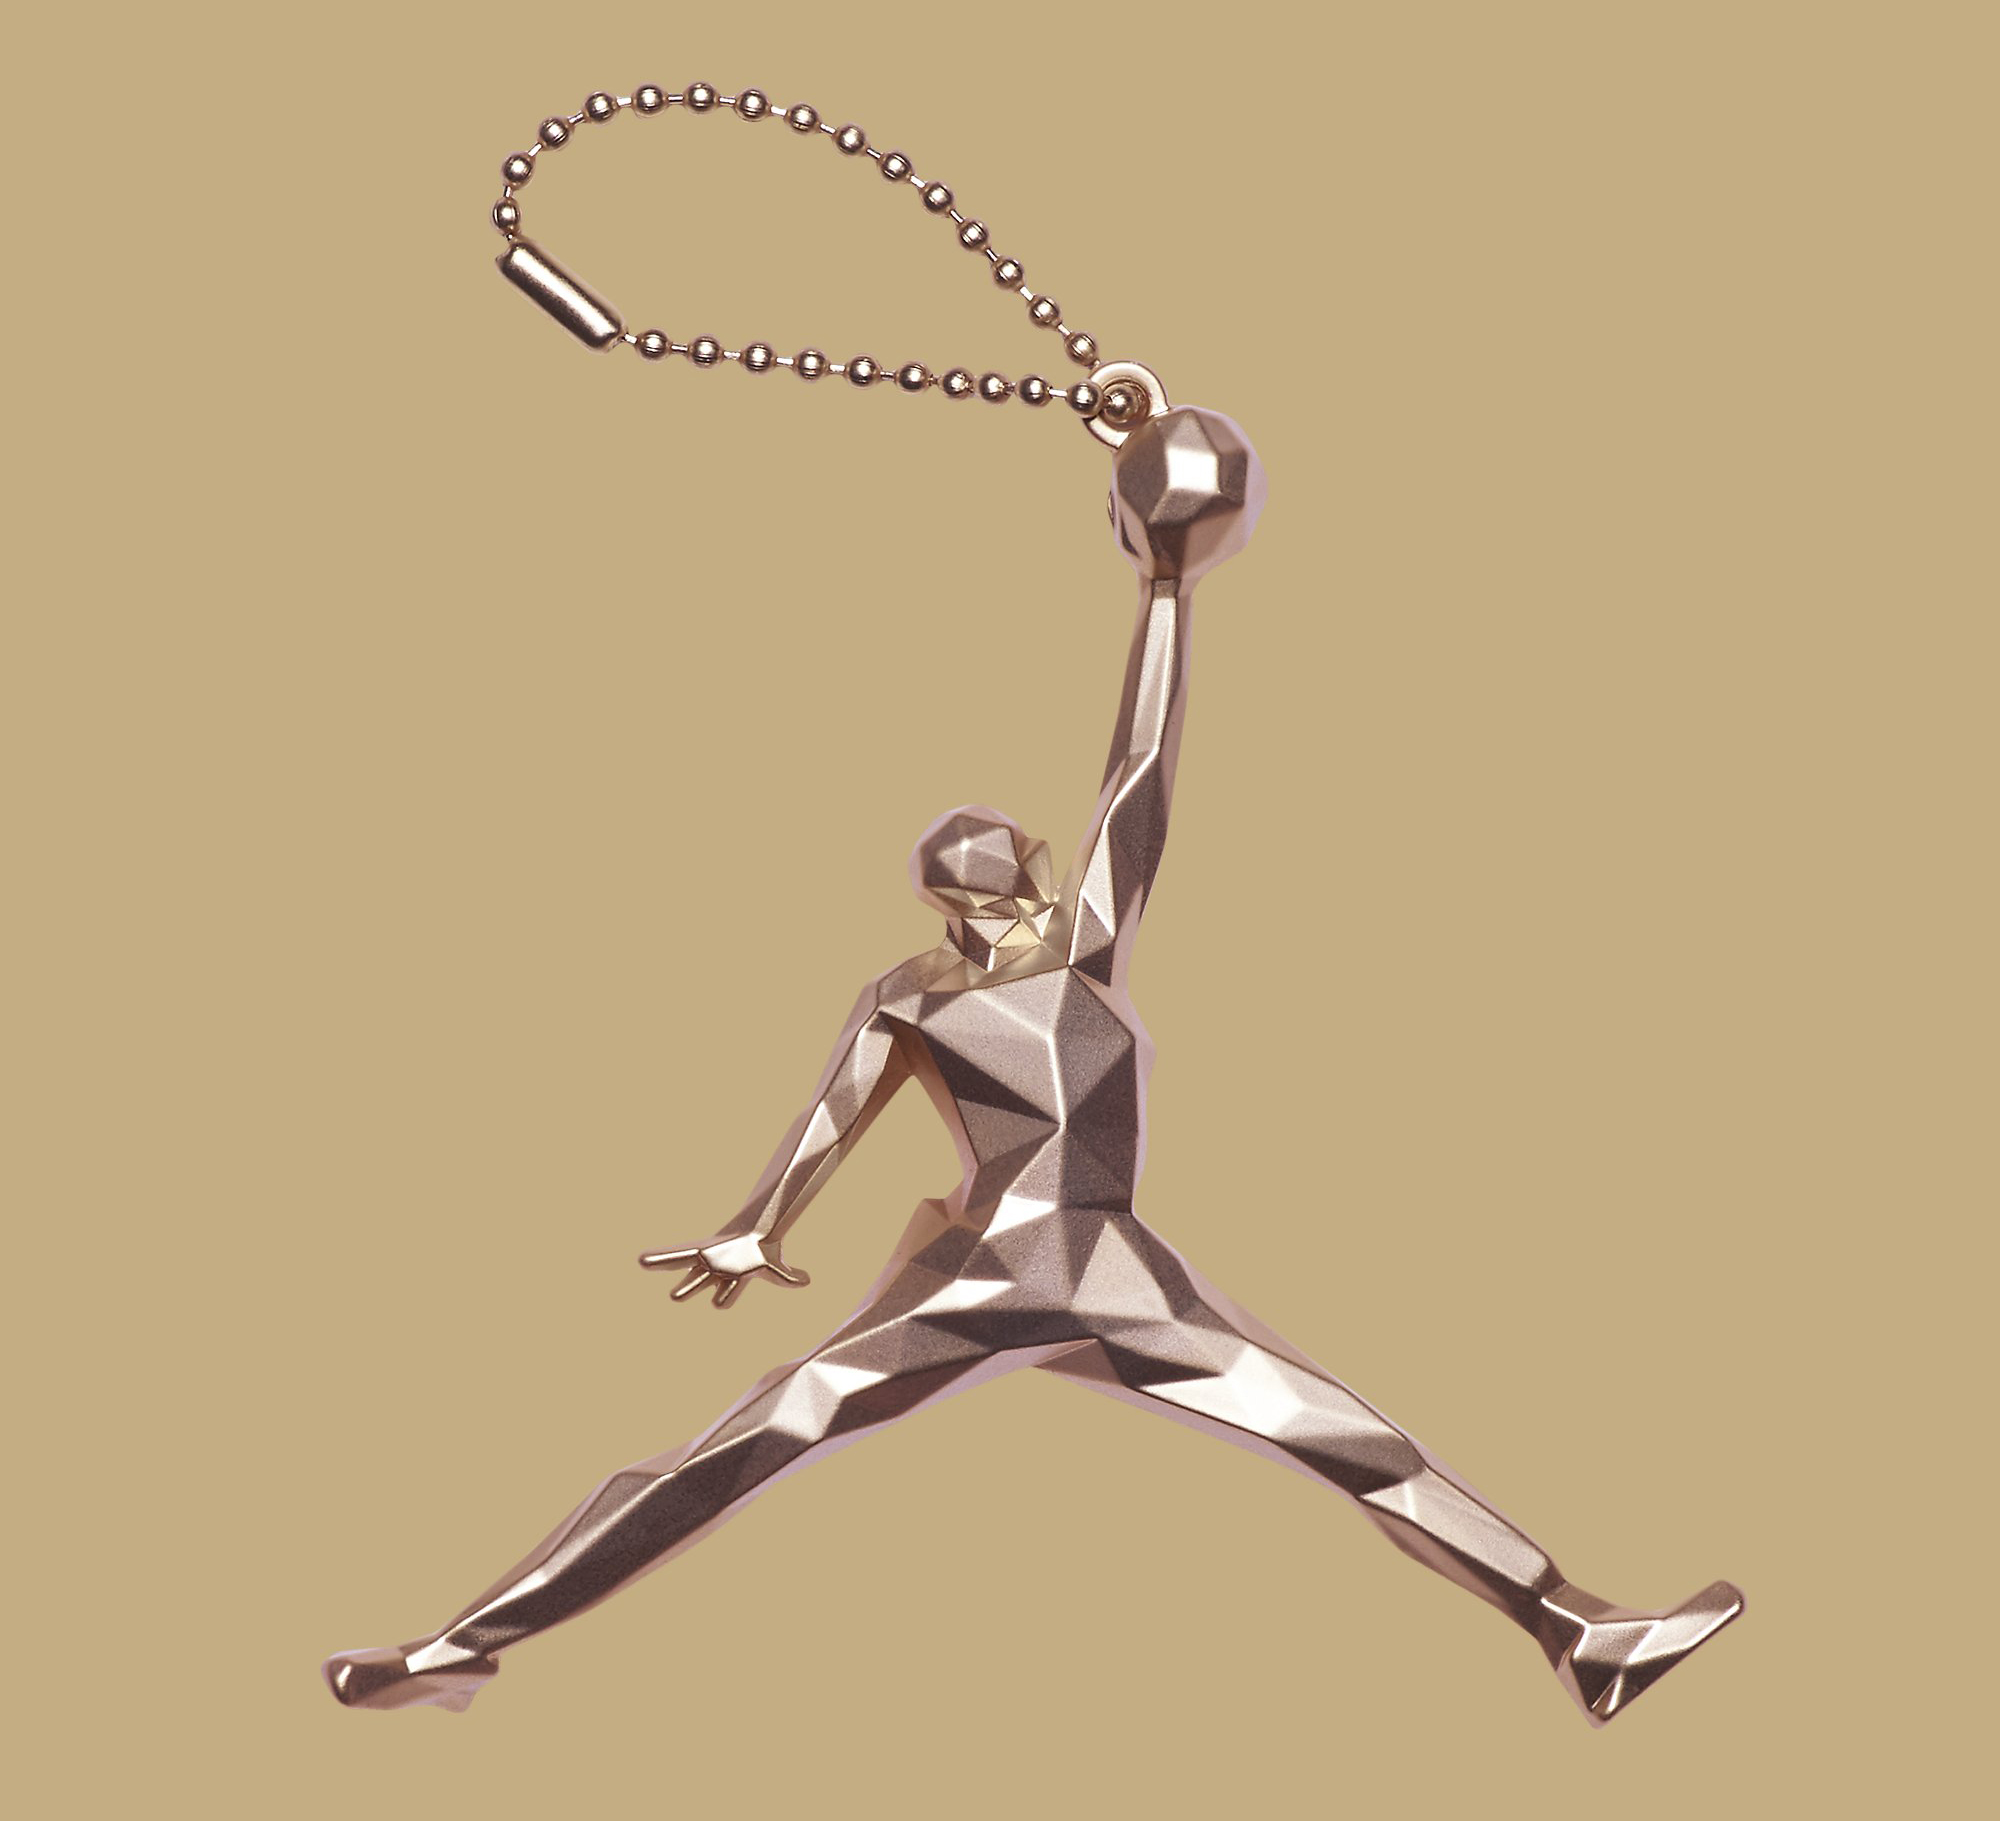 Gold Pinnacle Air Jordan 6 854271-730 Keychain